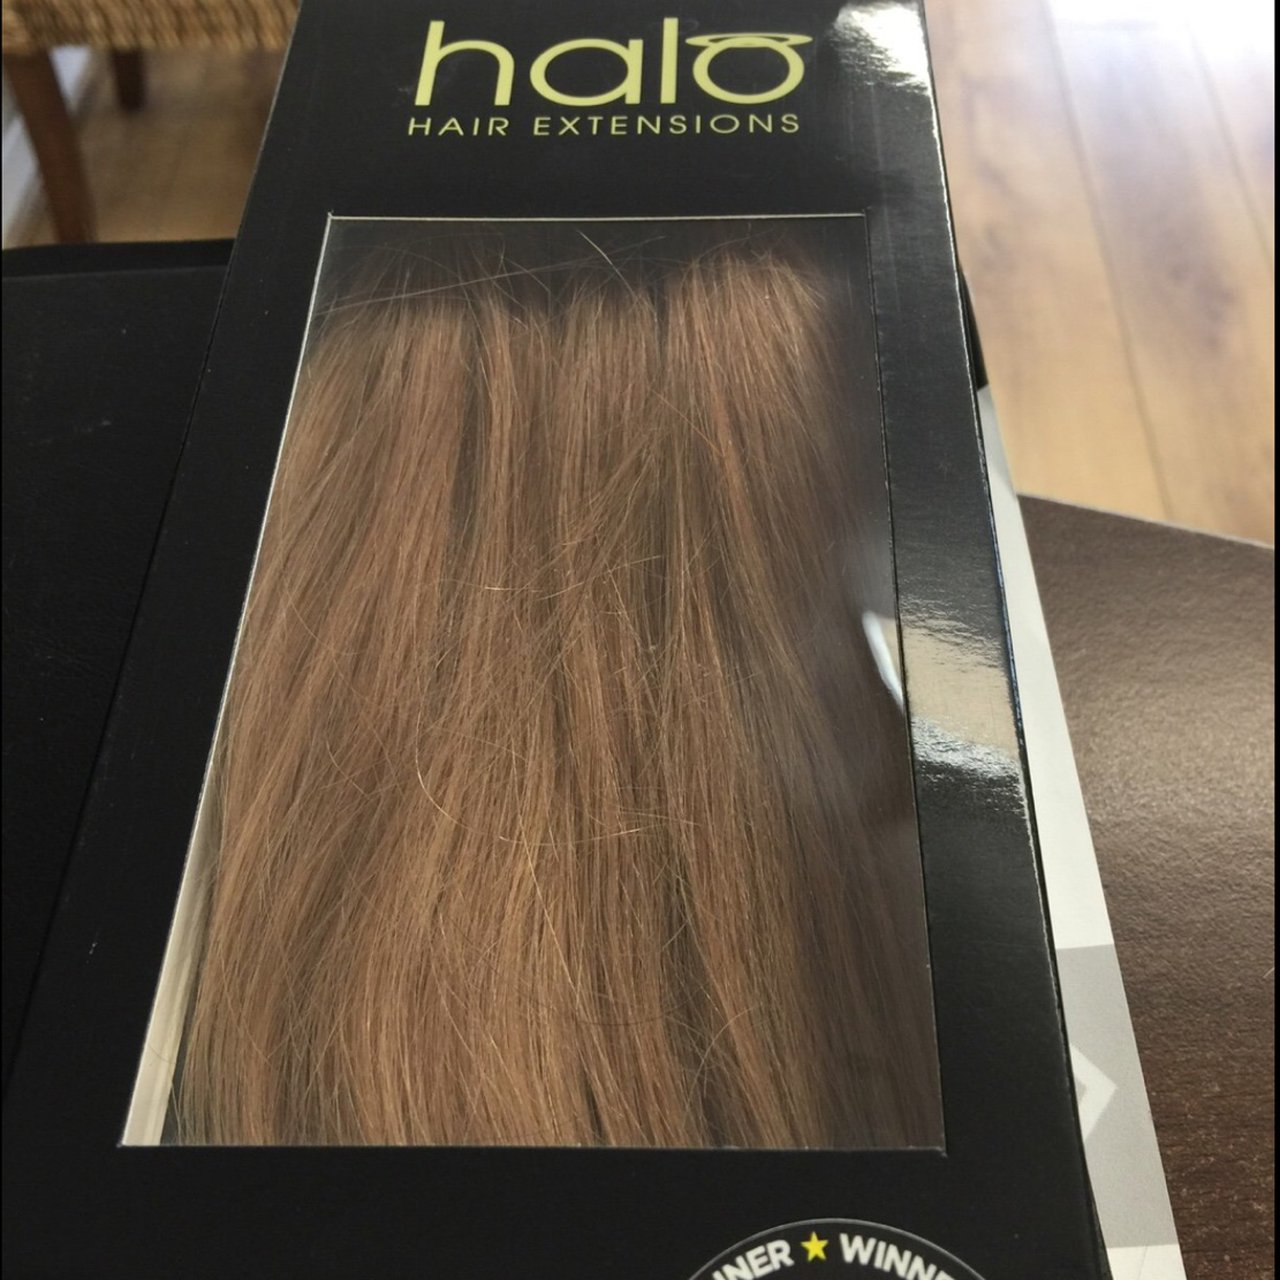 Lowered Price 100 Authentic 20 Human Halo Hair Extensions Depop